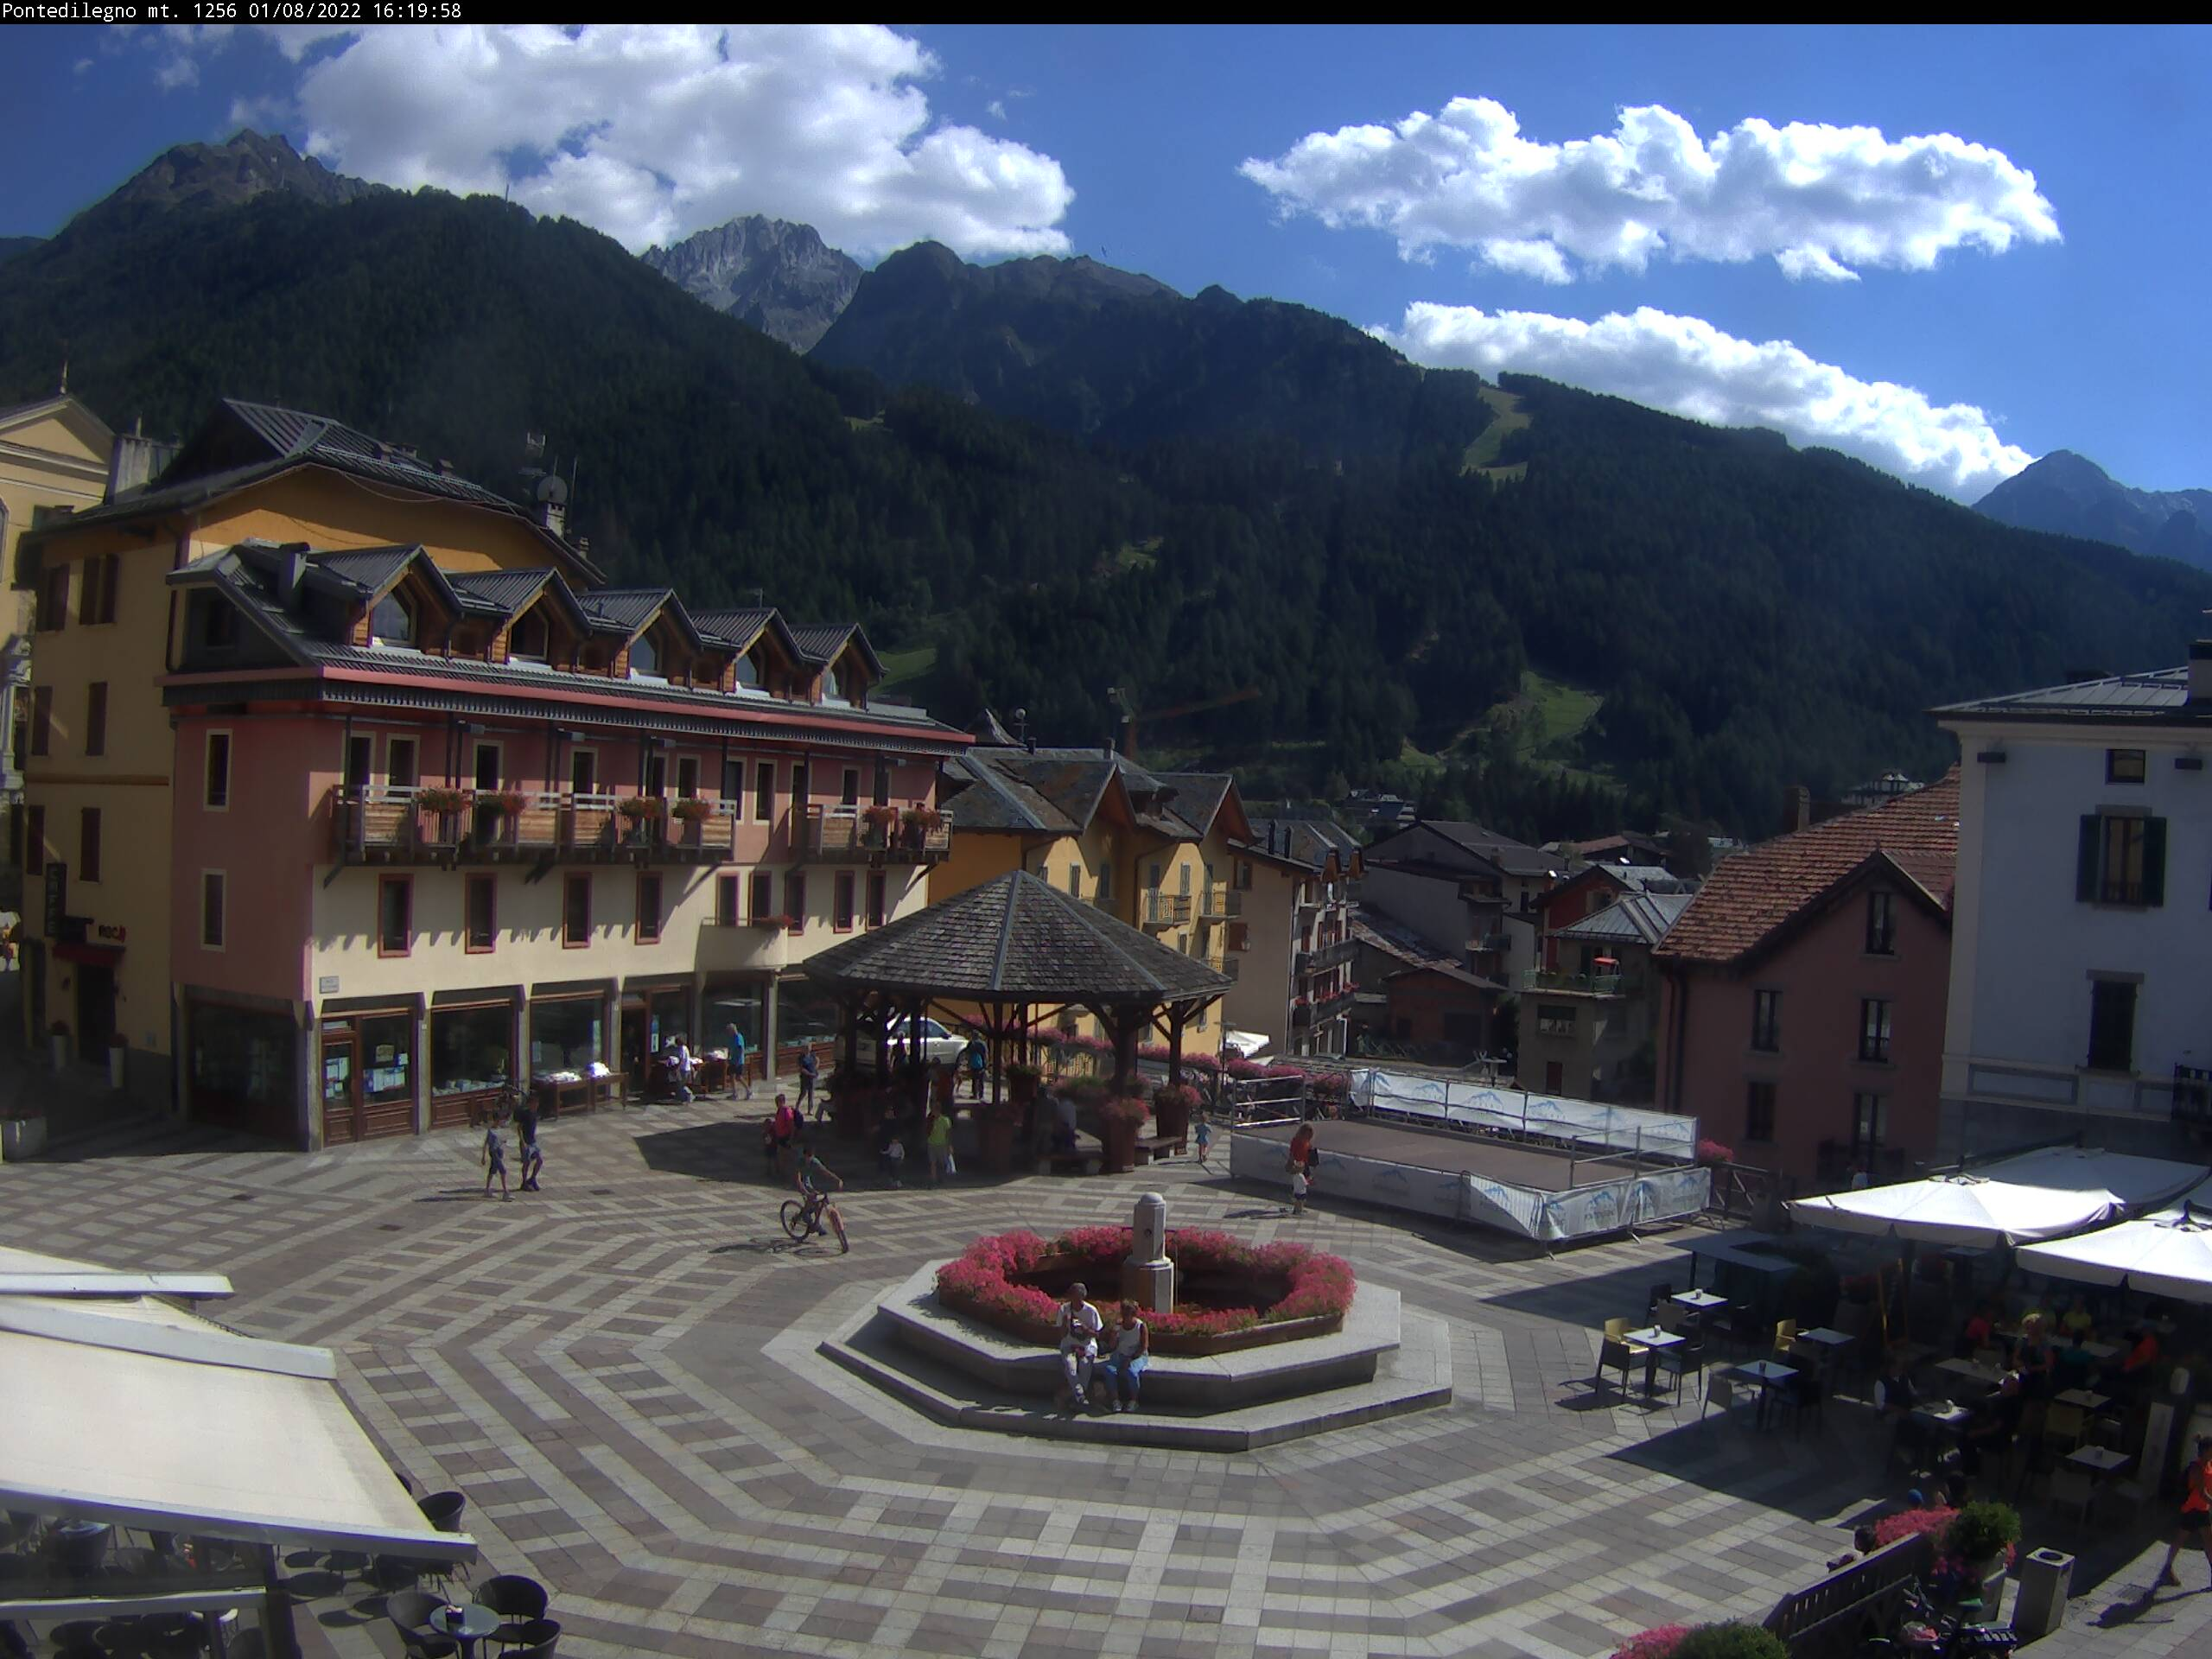 Ponte di Lengo webcam - village main square